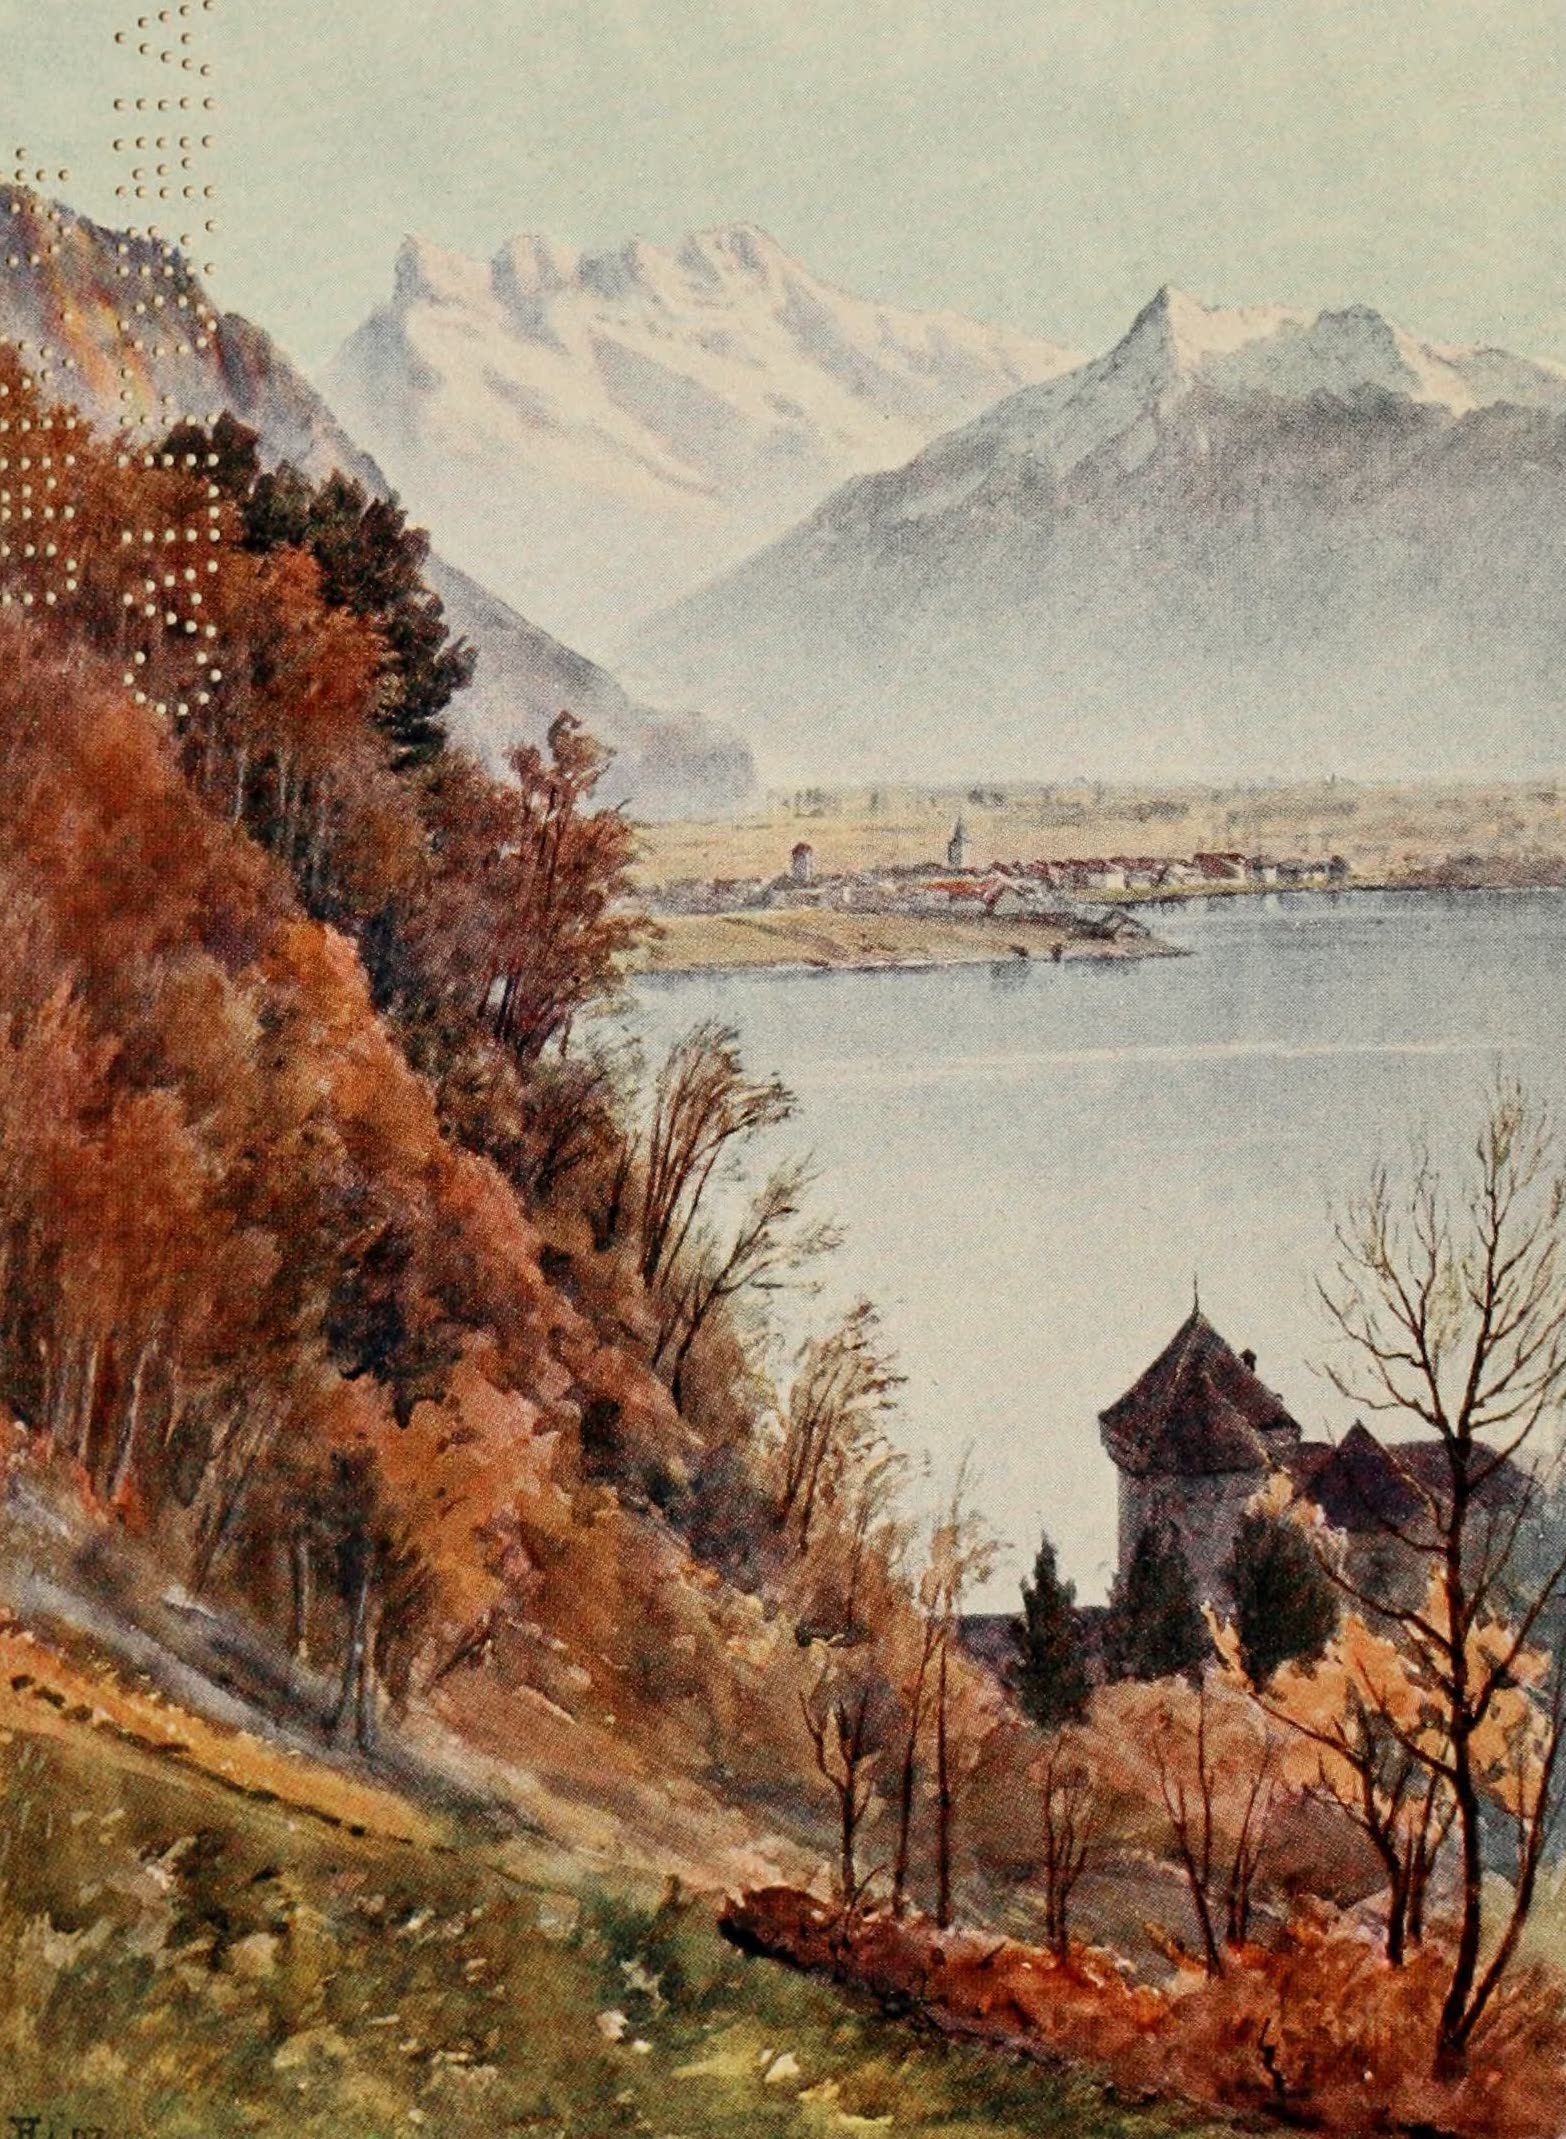 Montreux, Painted and Described - Chillon and Rhone Valley from Veytaux (1908)